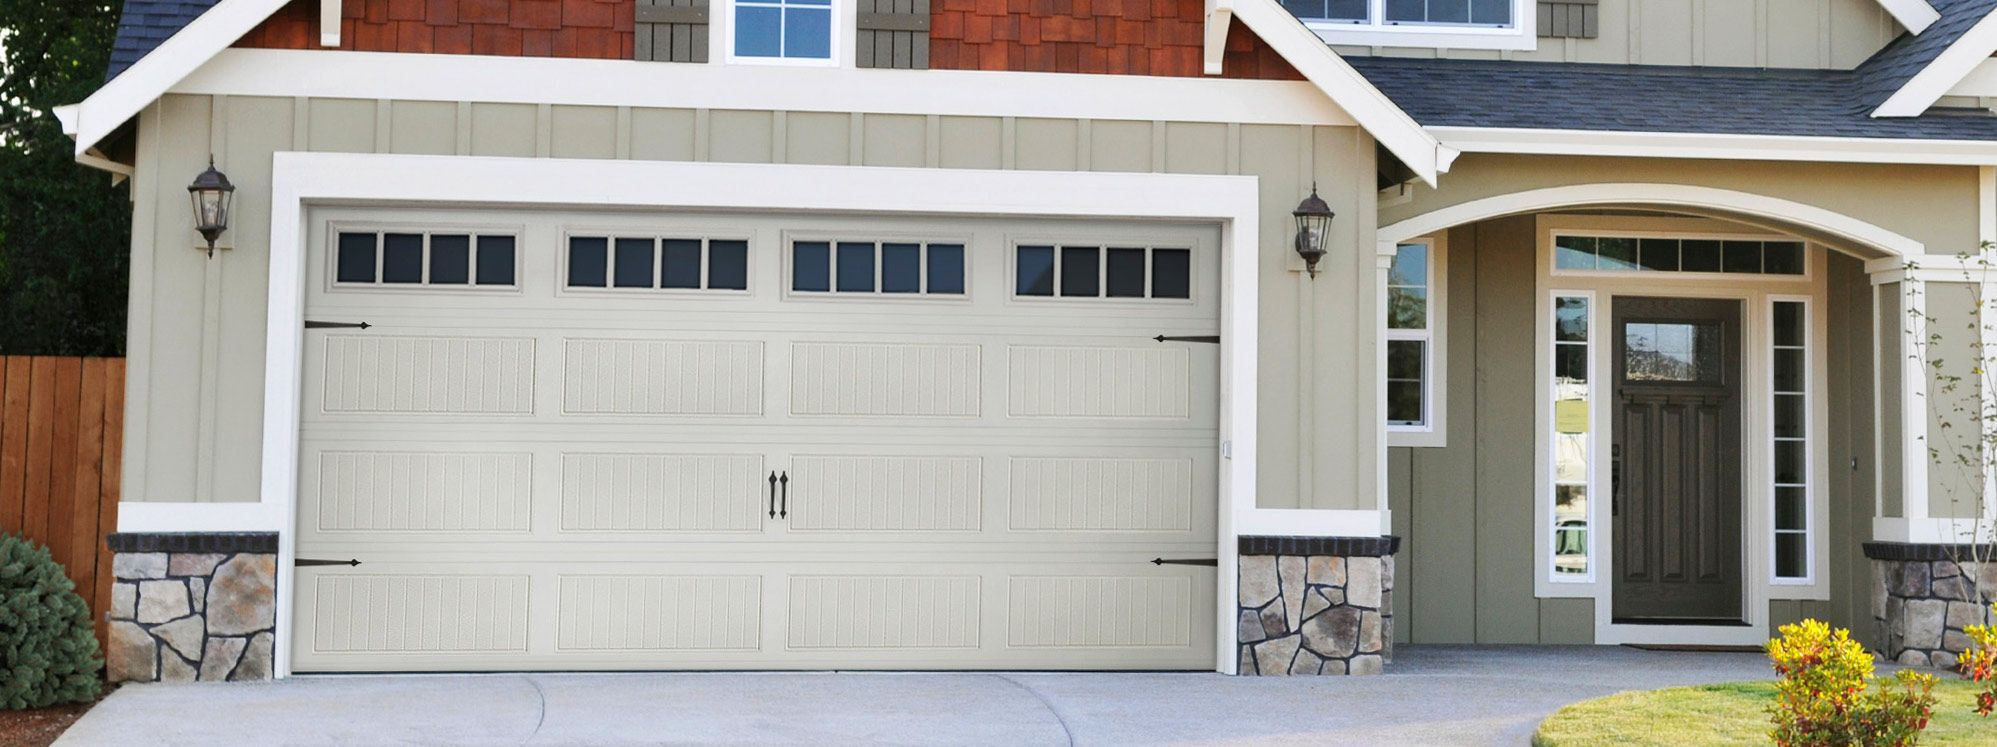 Exceptionnel Garage Door Repair In Yonkers, NY Is Your Local Service Provider Of Garage  Door Repair And Other Services Related To Garage Door.We Are Available 24*7  For ...